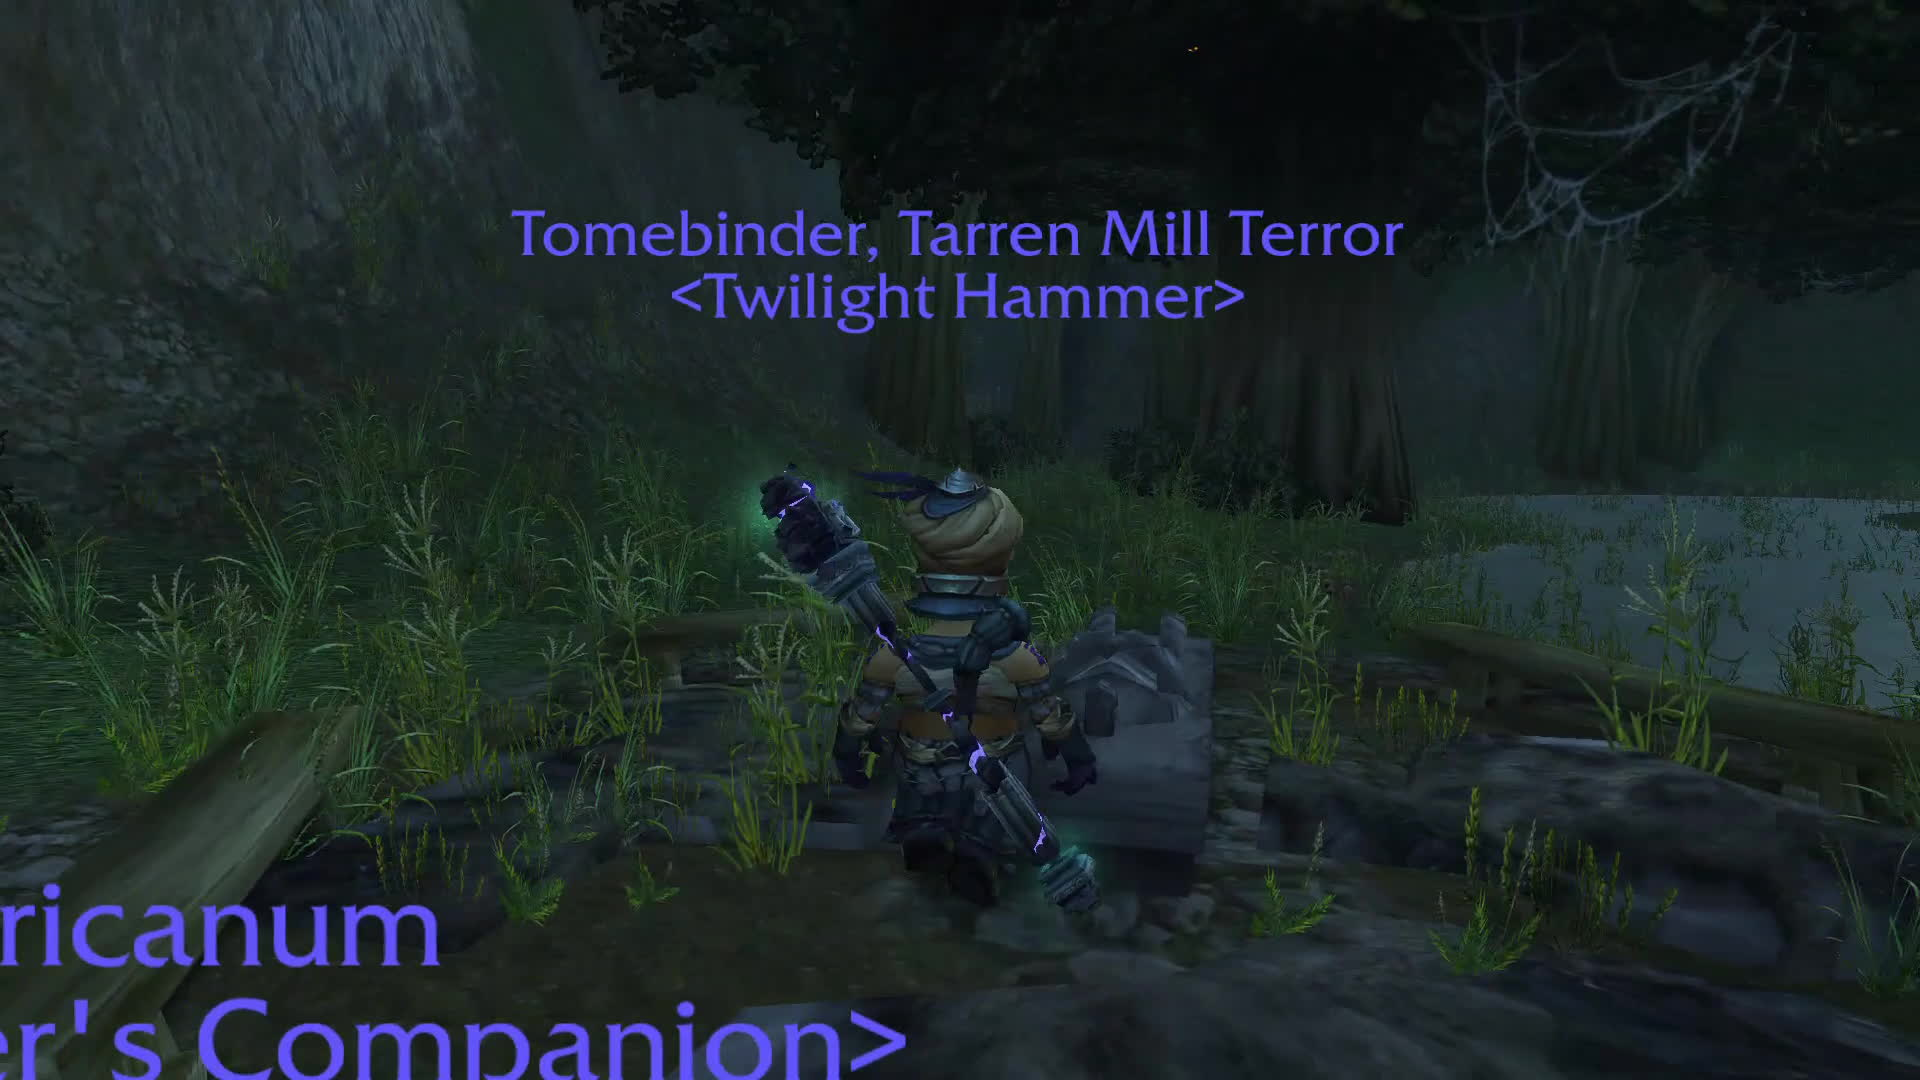 transmogrification, Twilight Gnome GIFs